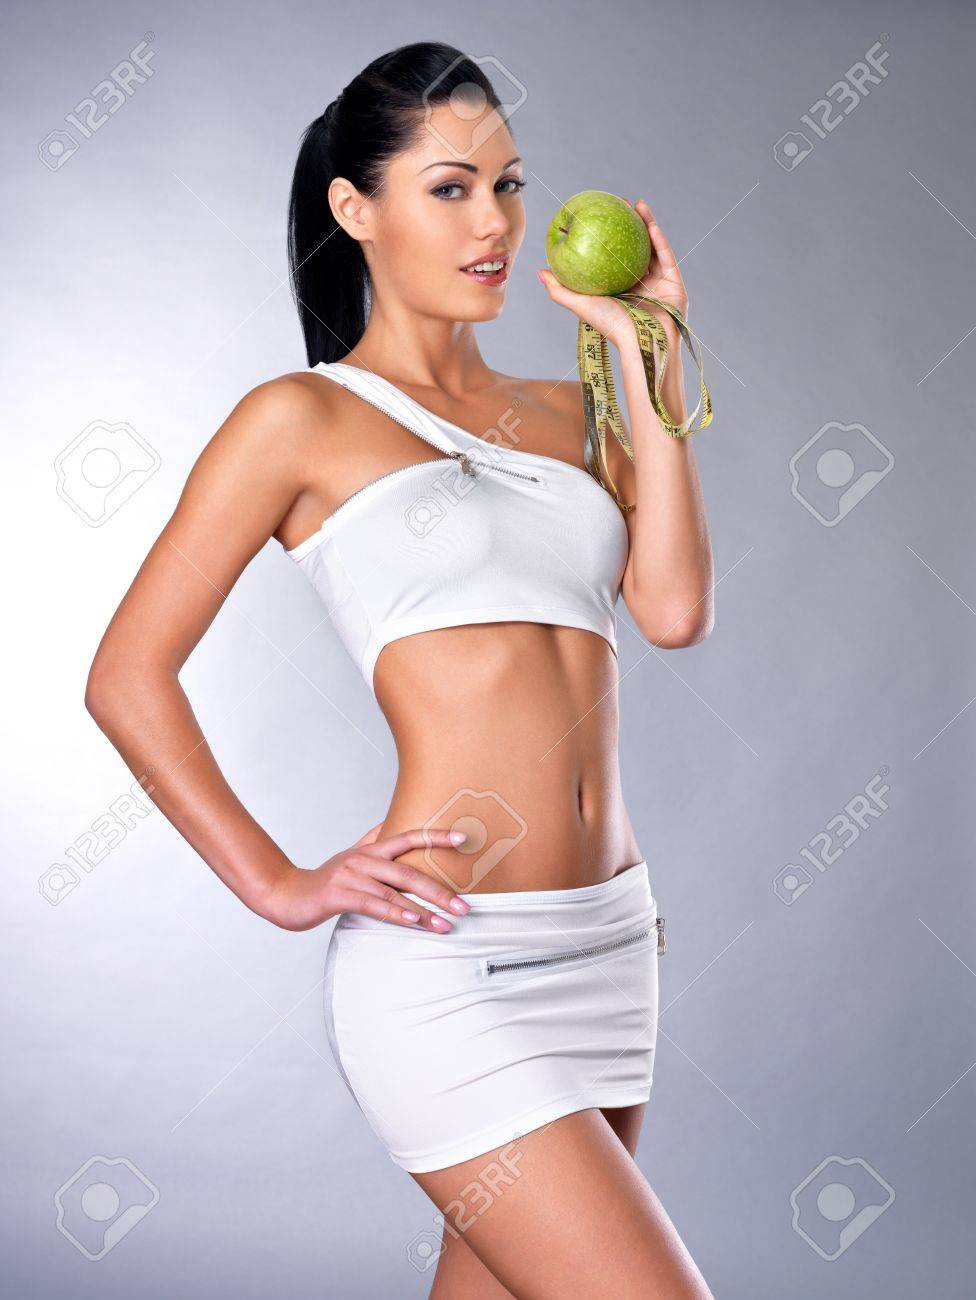 Portrait of a healthy woman with apple and bottle of water. Healthy fitness and eating lifestyle concept. Stock Photo - 16300958